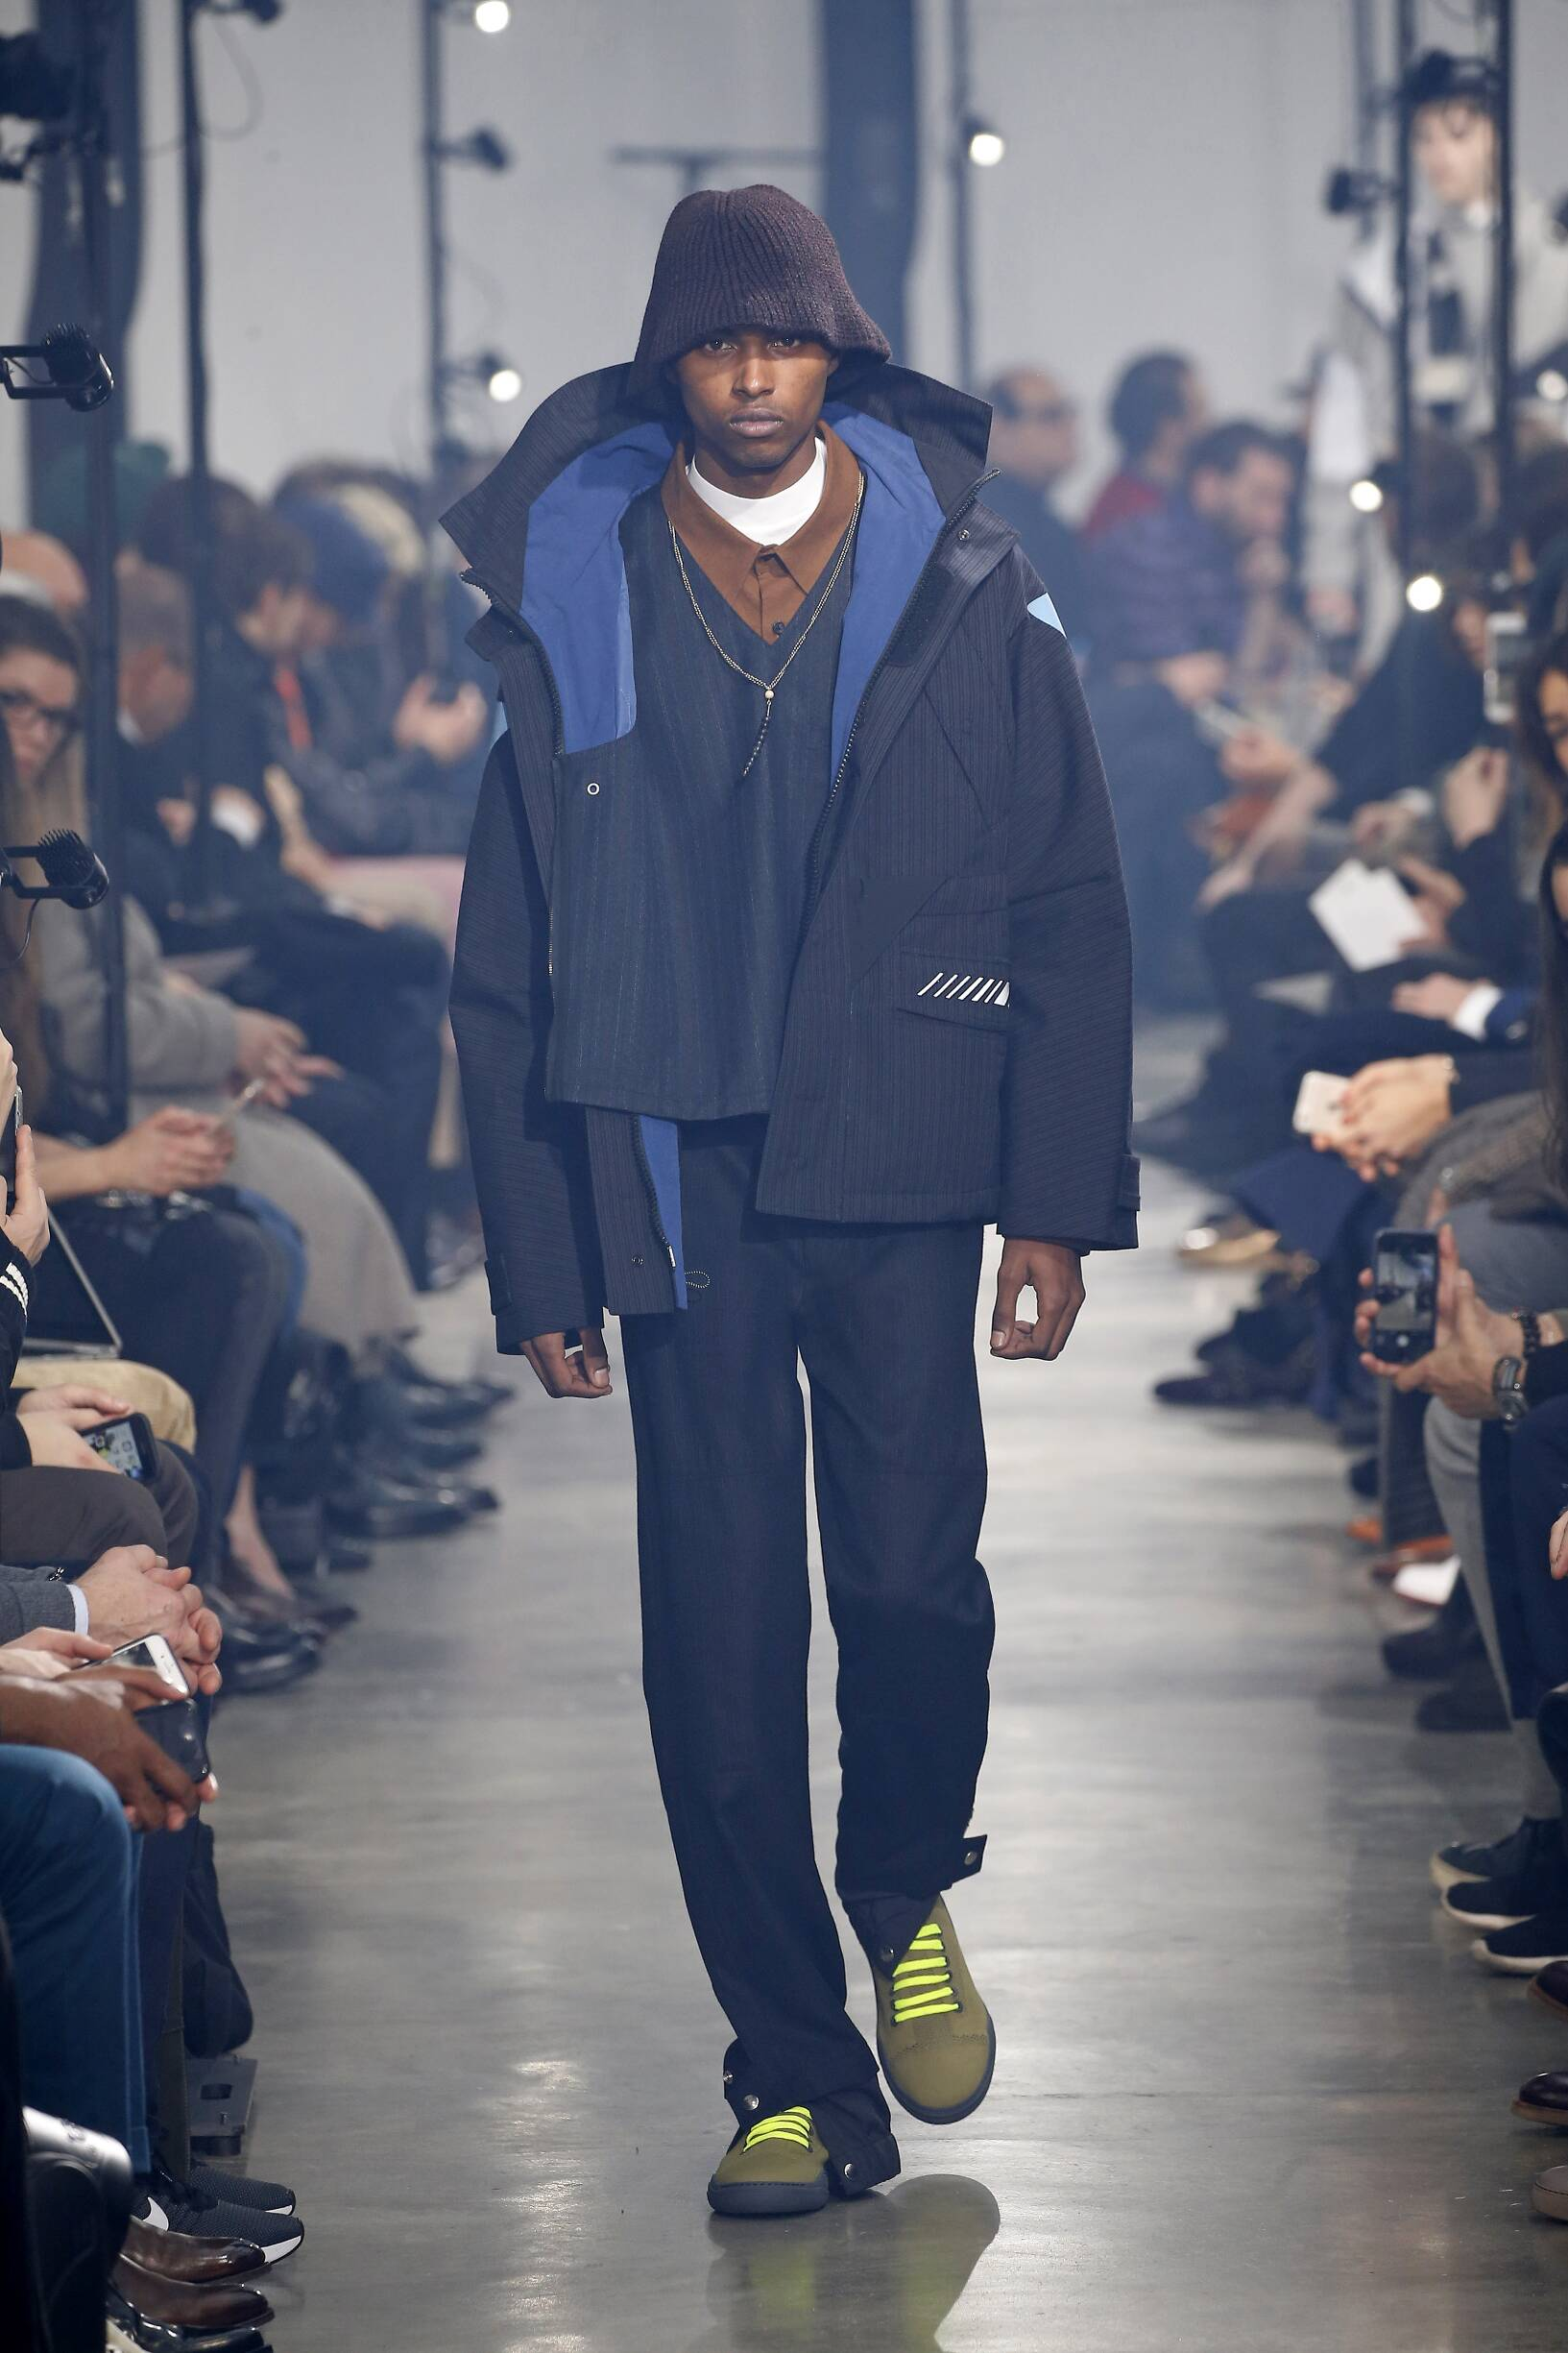 2018 Lanvin Man Winter Catwalk